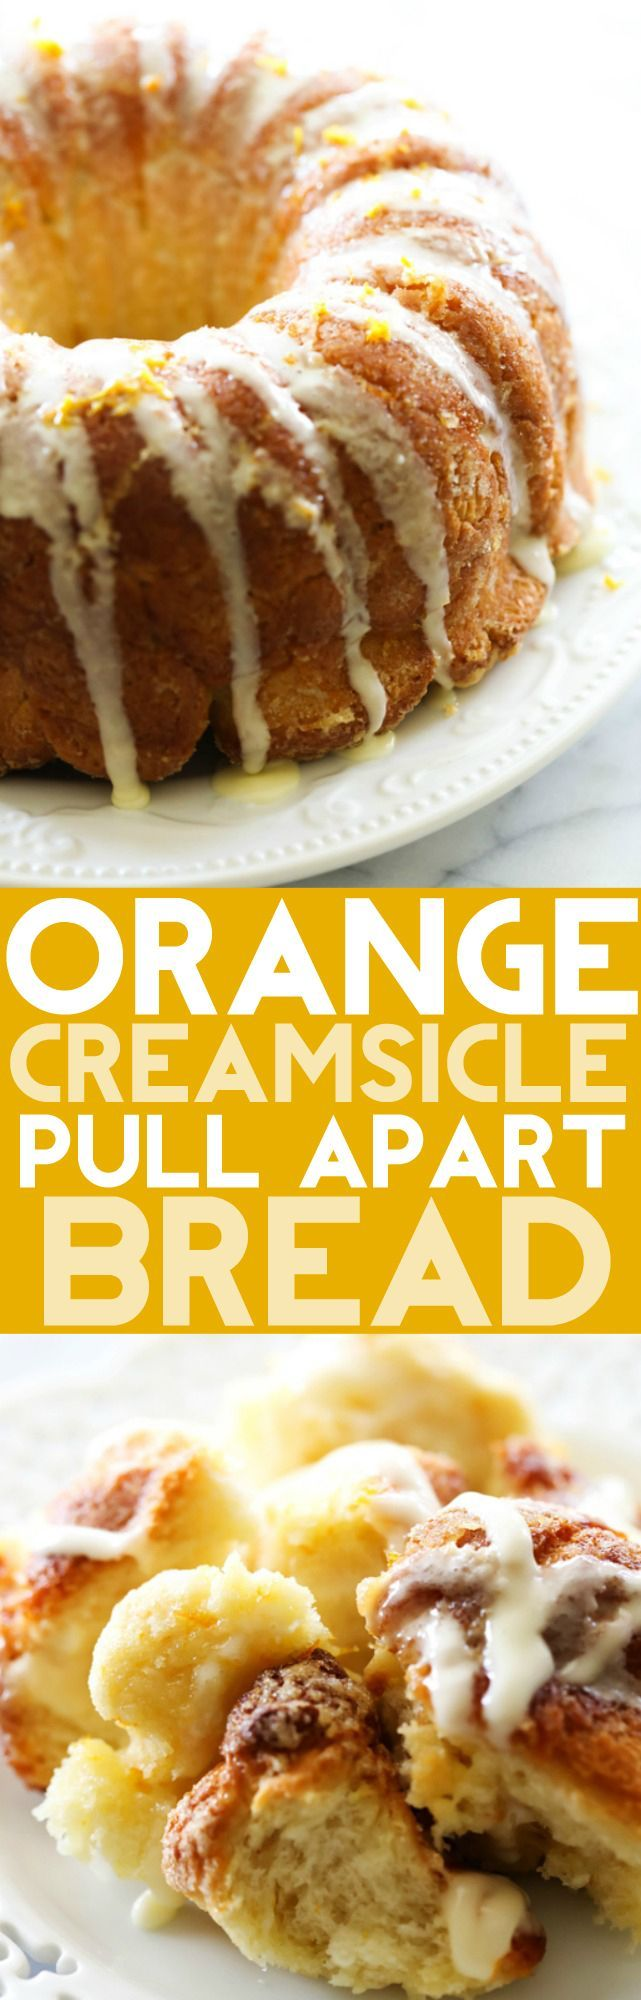 This Orange Creamsicle Pull Apart Bread is completely made from scratch. It tastes like orange rolls in the form of a delicious and fun breakfast or dessert! It has such a refreshing flavor and is the perfect spring or summertime treat!